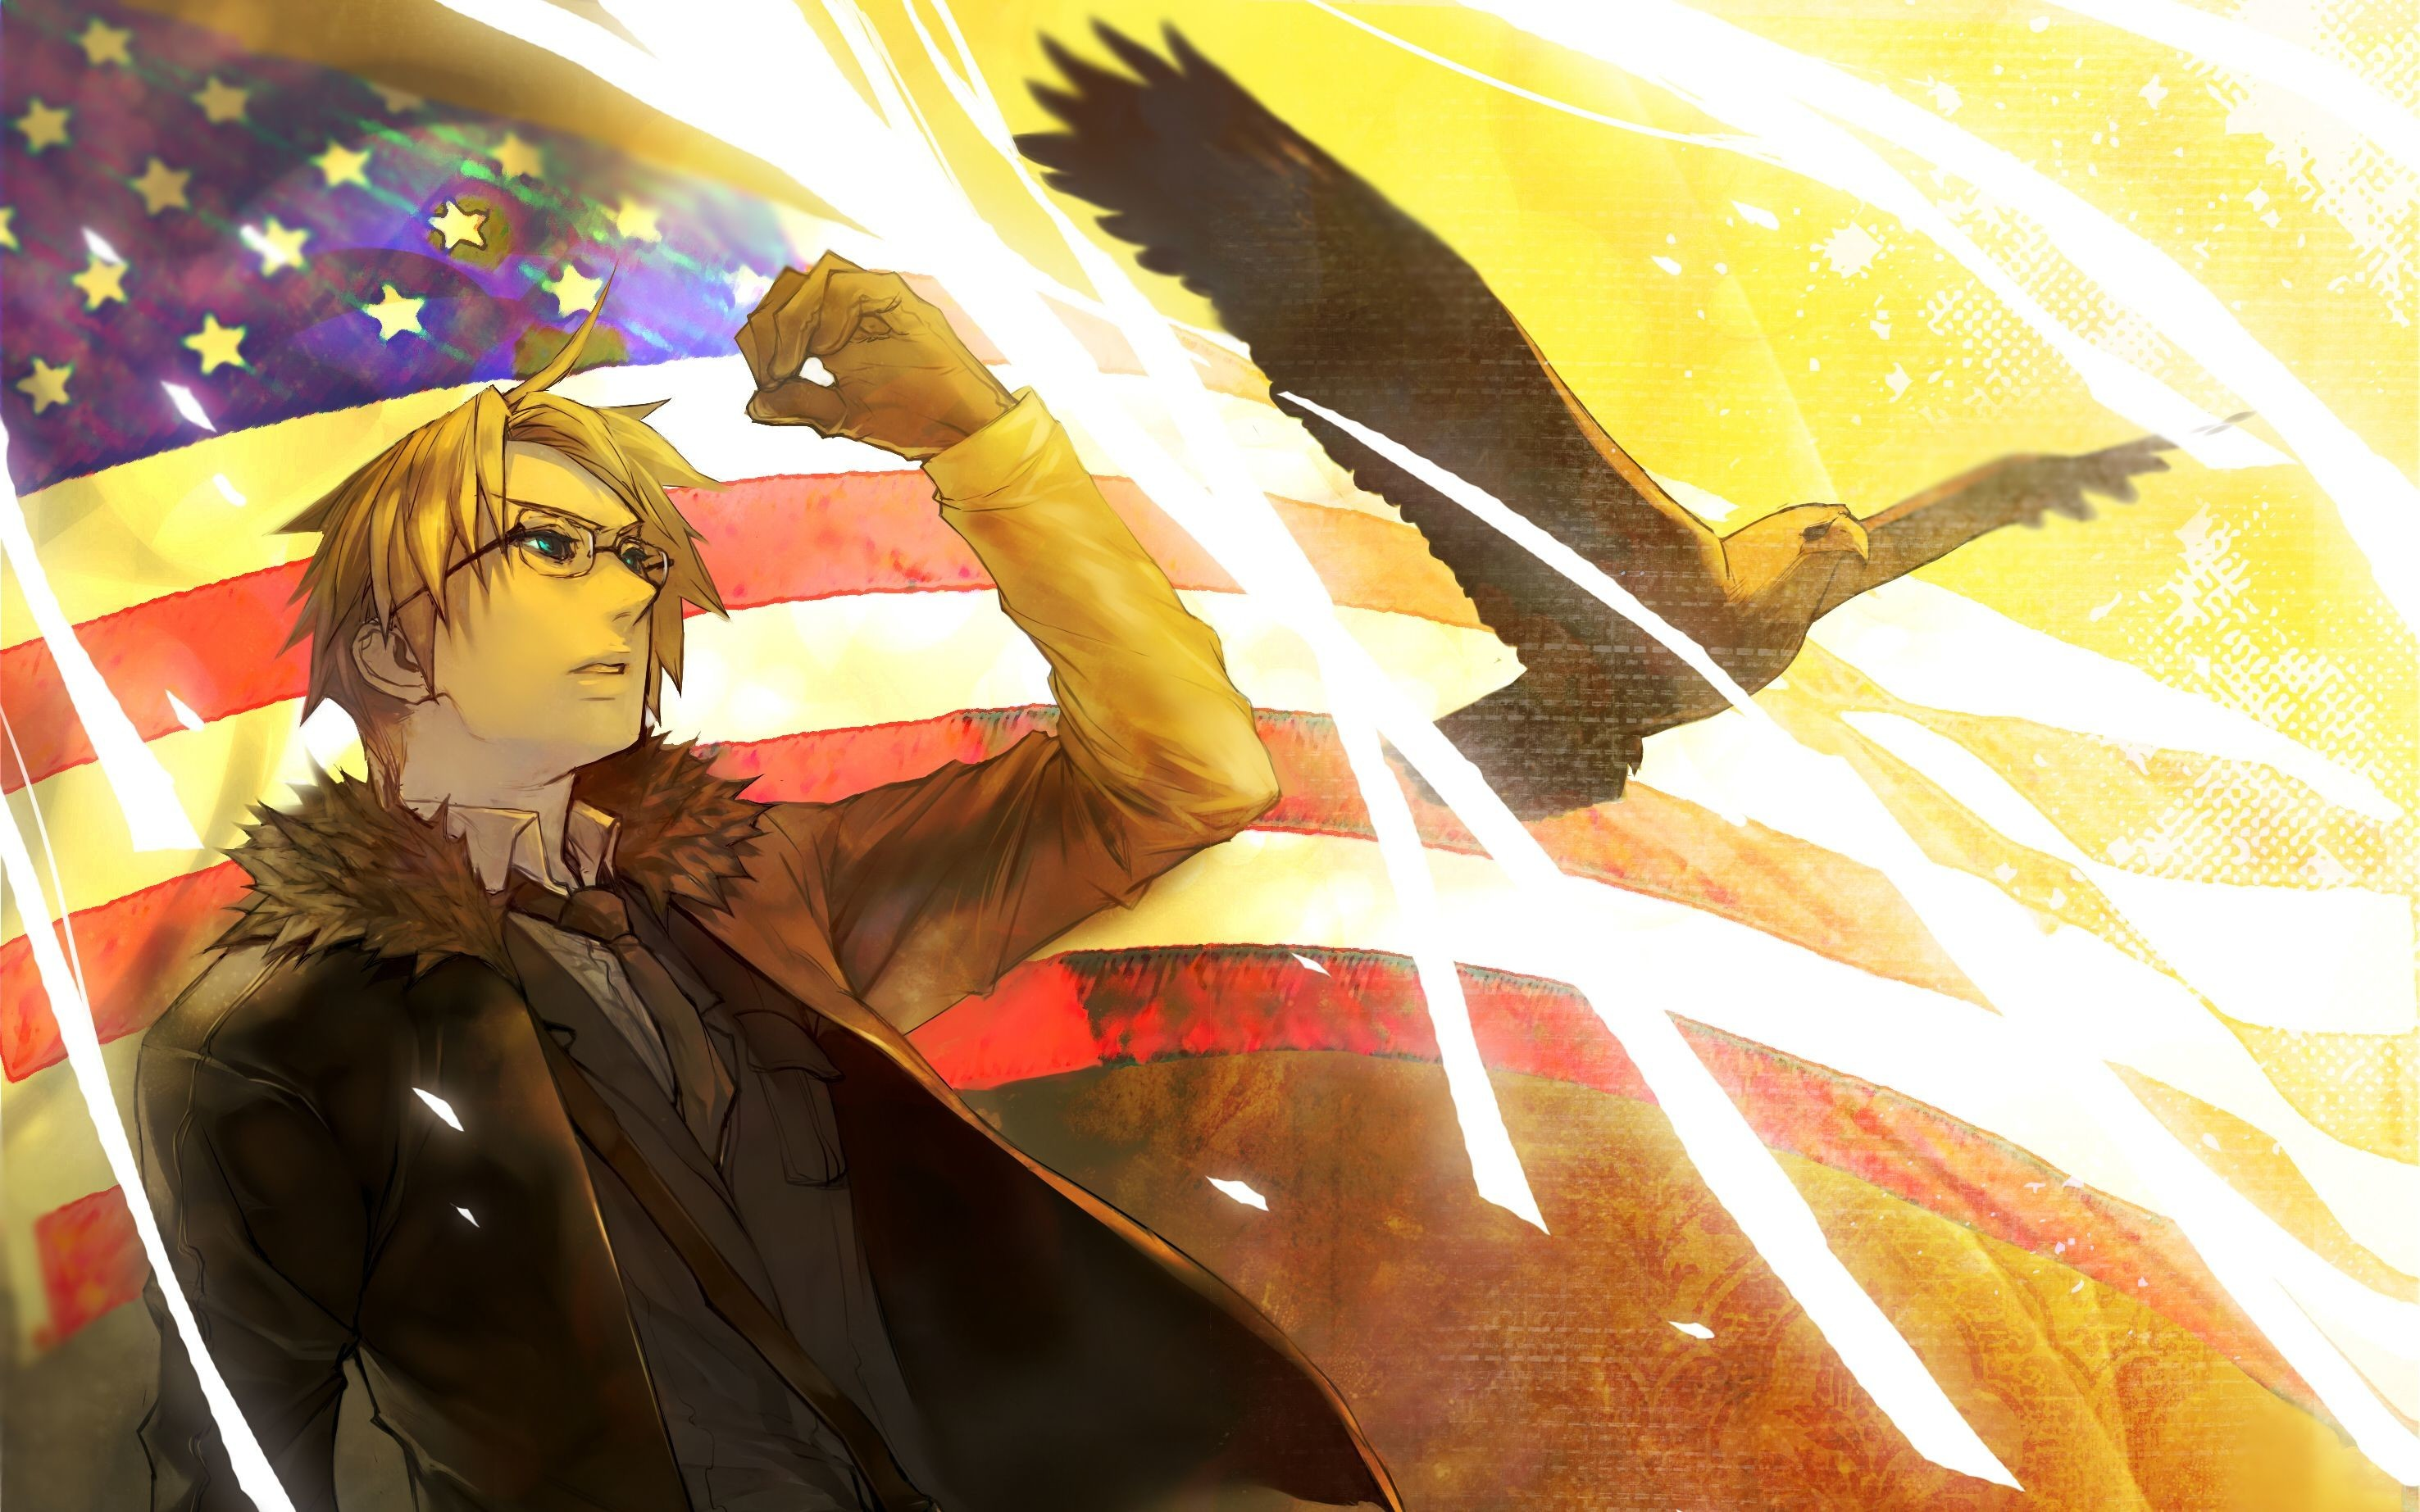 2952x1845  Hetalia America Wallpapers | Wallpapers, Backgrounds, Images, Art  o.m.g. its so beautiful my hero!! | hetalia | Pinterest | Hetalia, Axis  powers ...